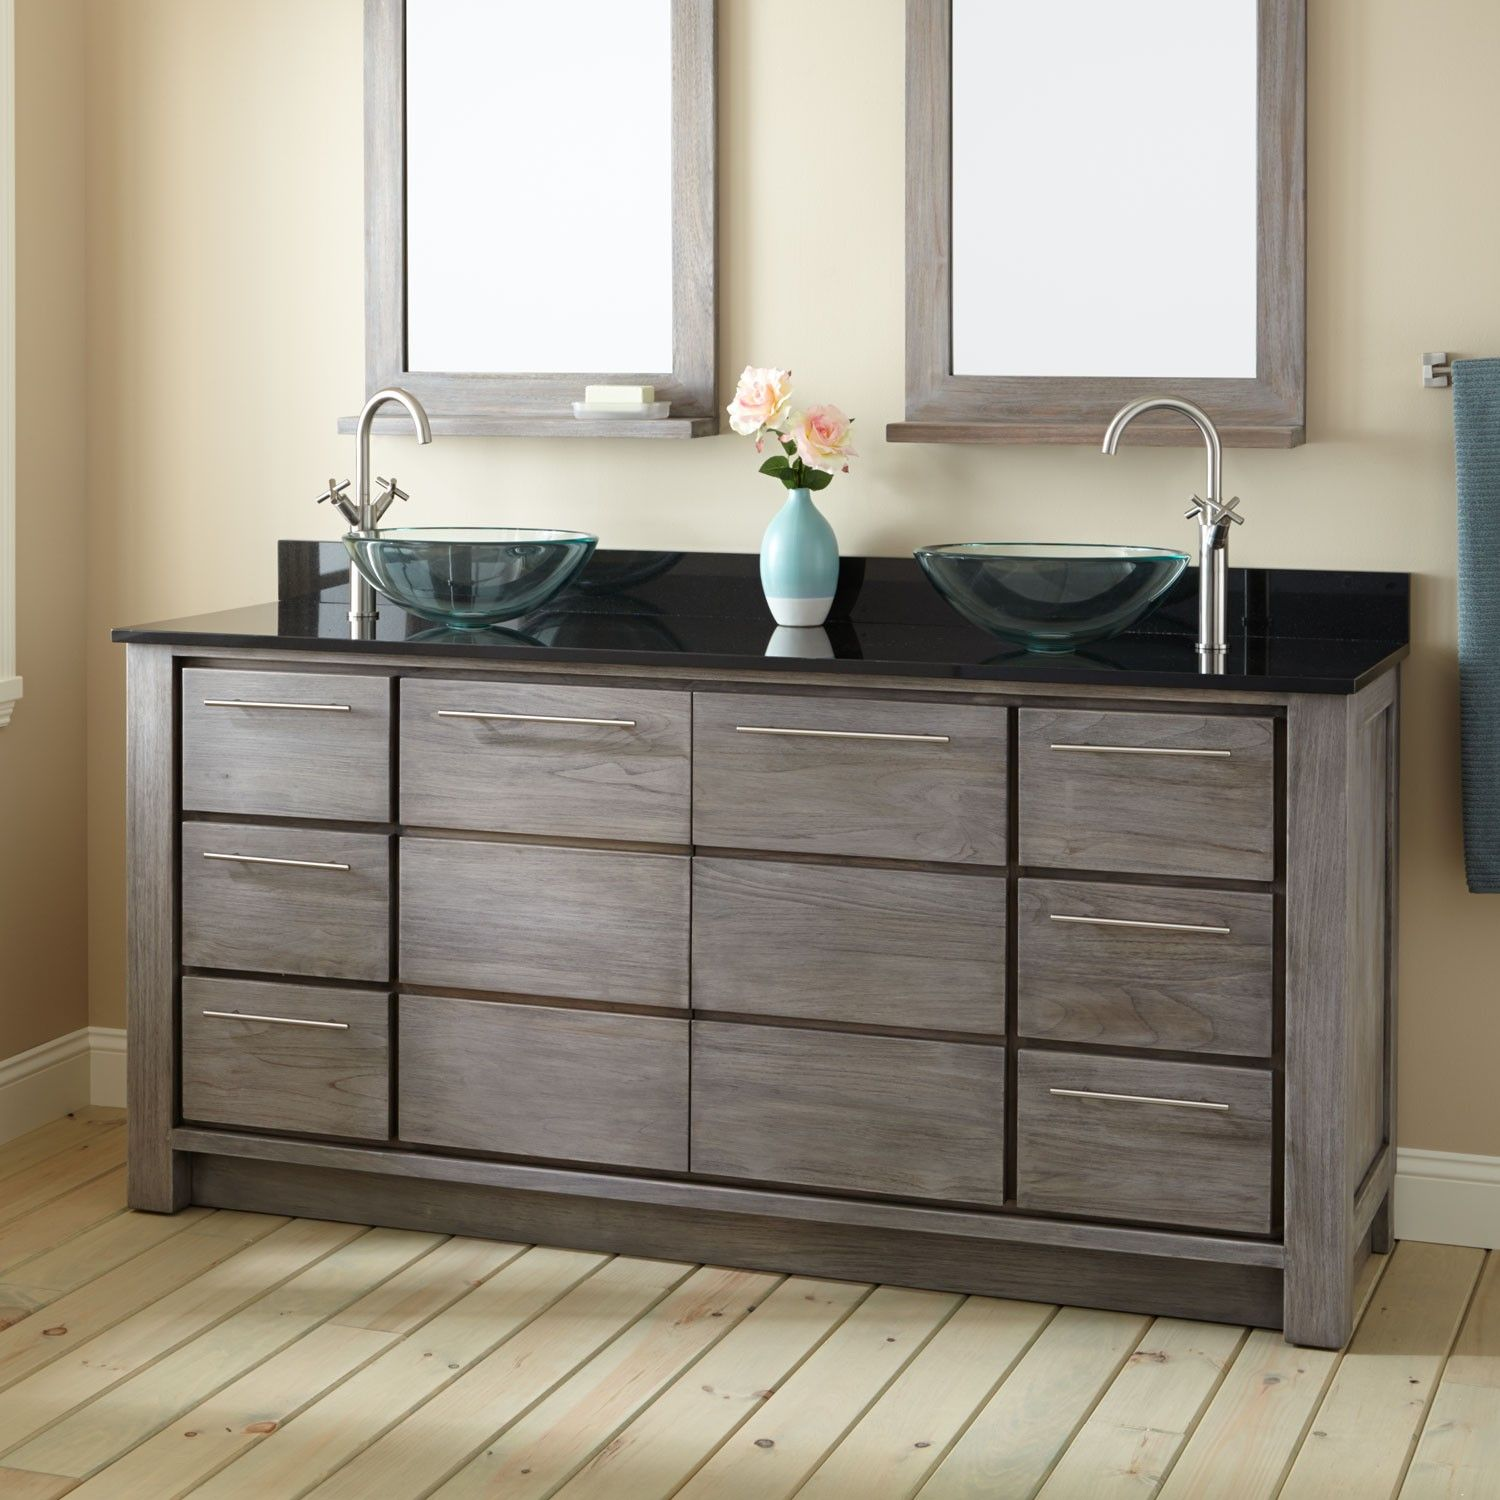 Two Sink Vanities 72 Quot Venica Teak Double Vessel Sinks Vanity Gray Wash